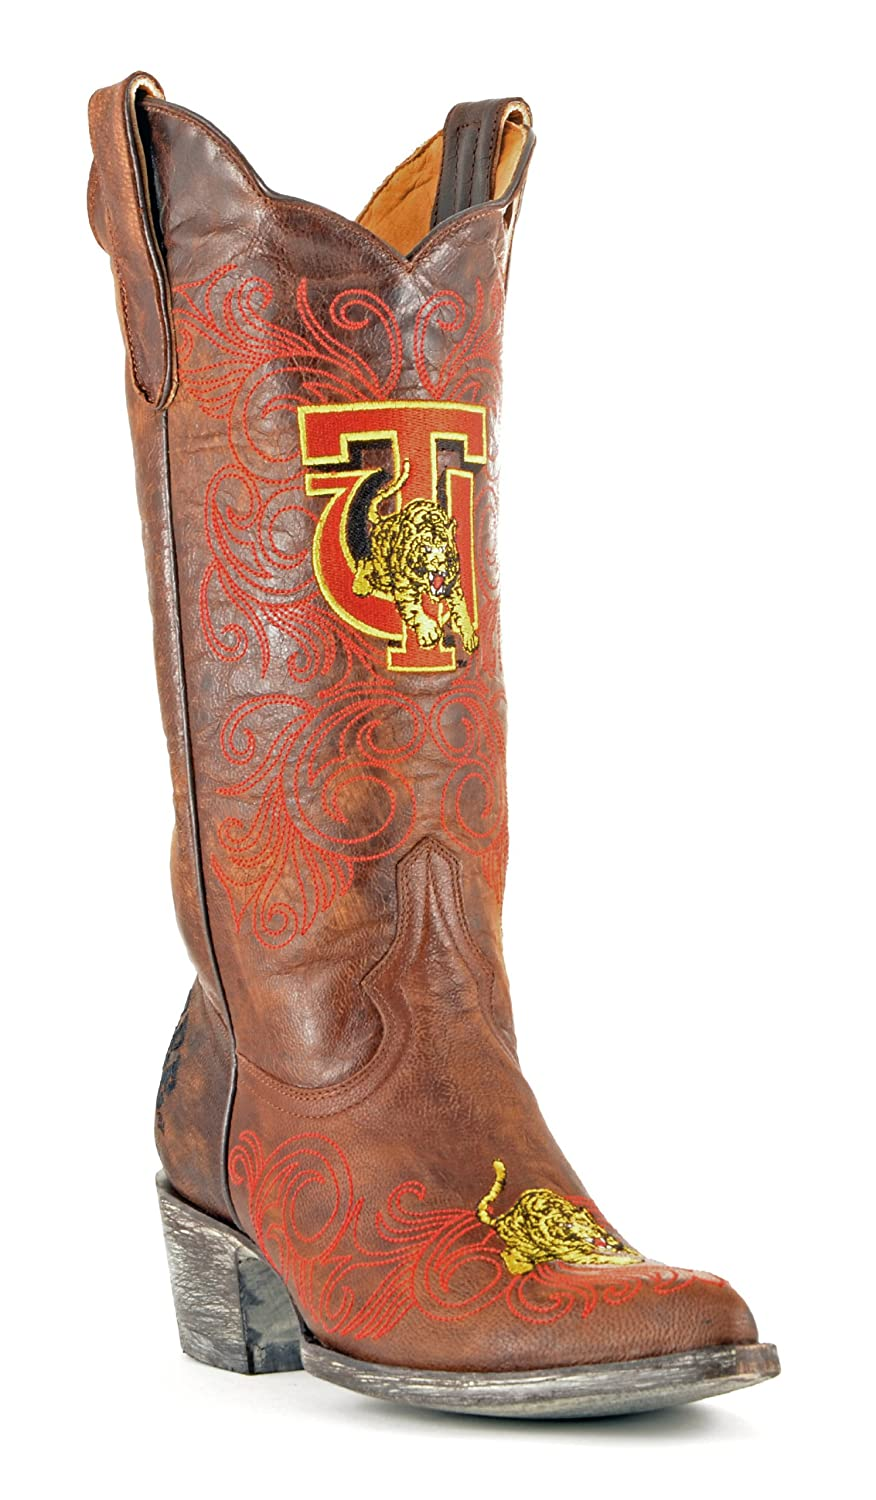 NCAA Tuskegee Golden Tigers Women's 13-Inch Gameday Boots